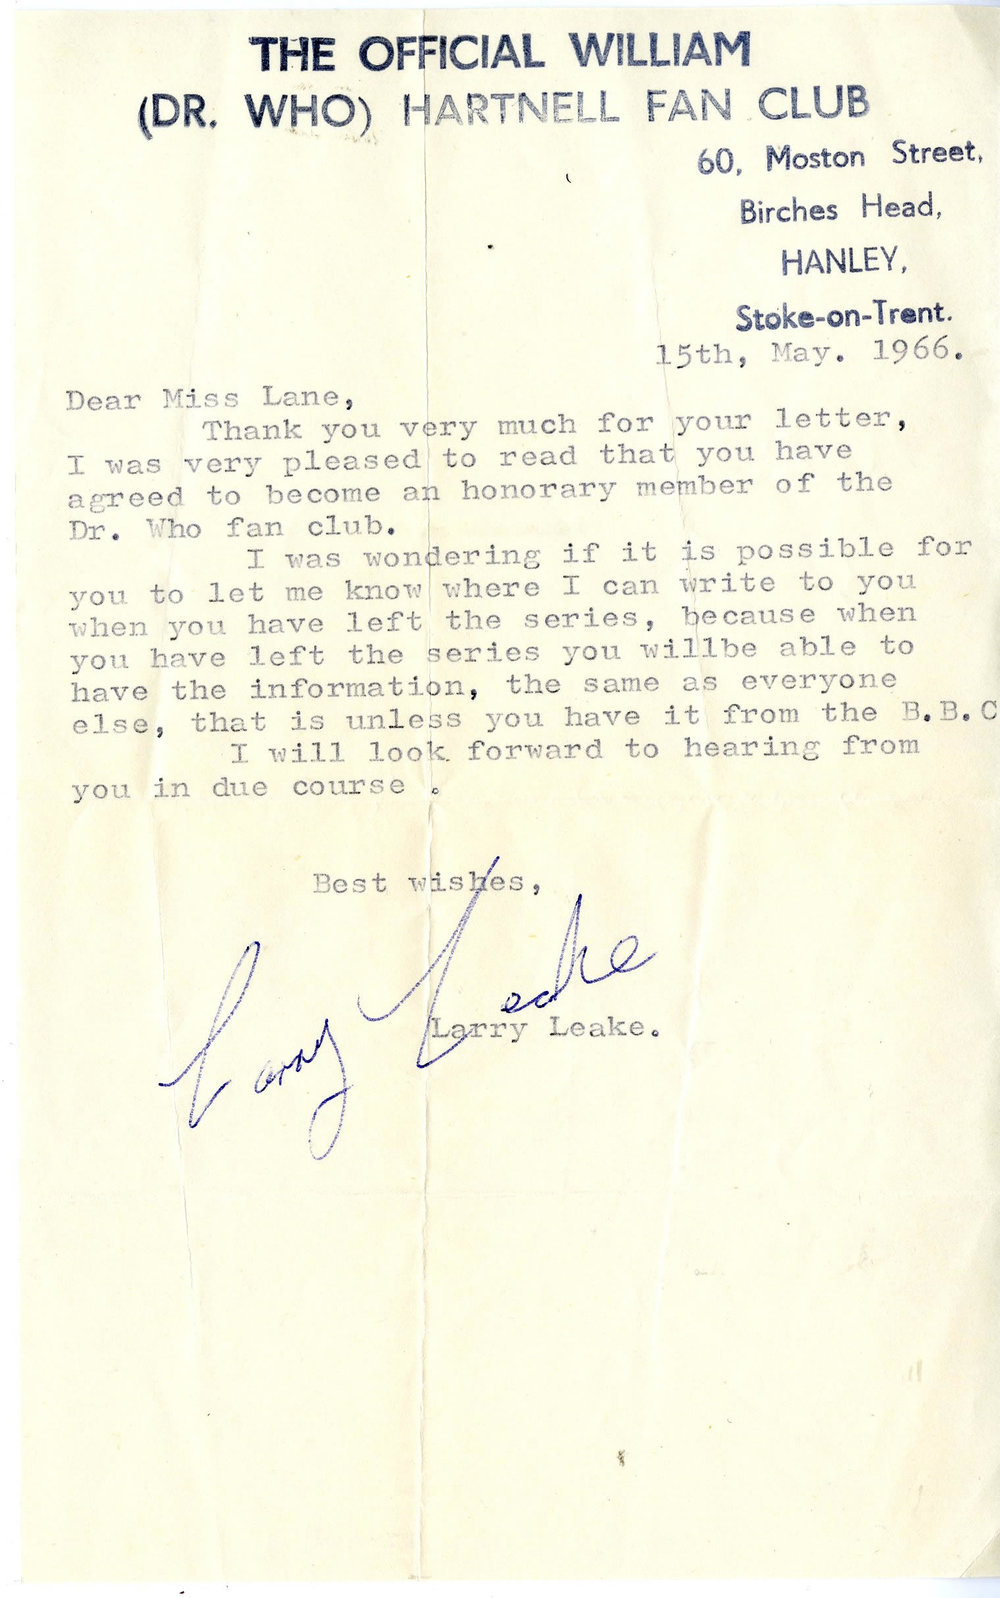 Letter from The Official William (Dr. Who) Hartnell Fan Club, dated 15 May 1966, to Jackie Lane (from the Jackie Lane archive)